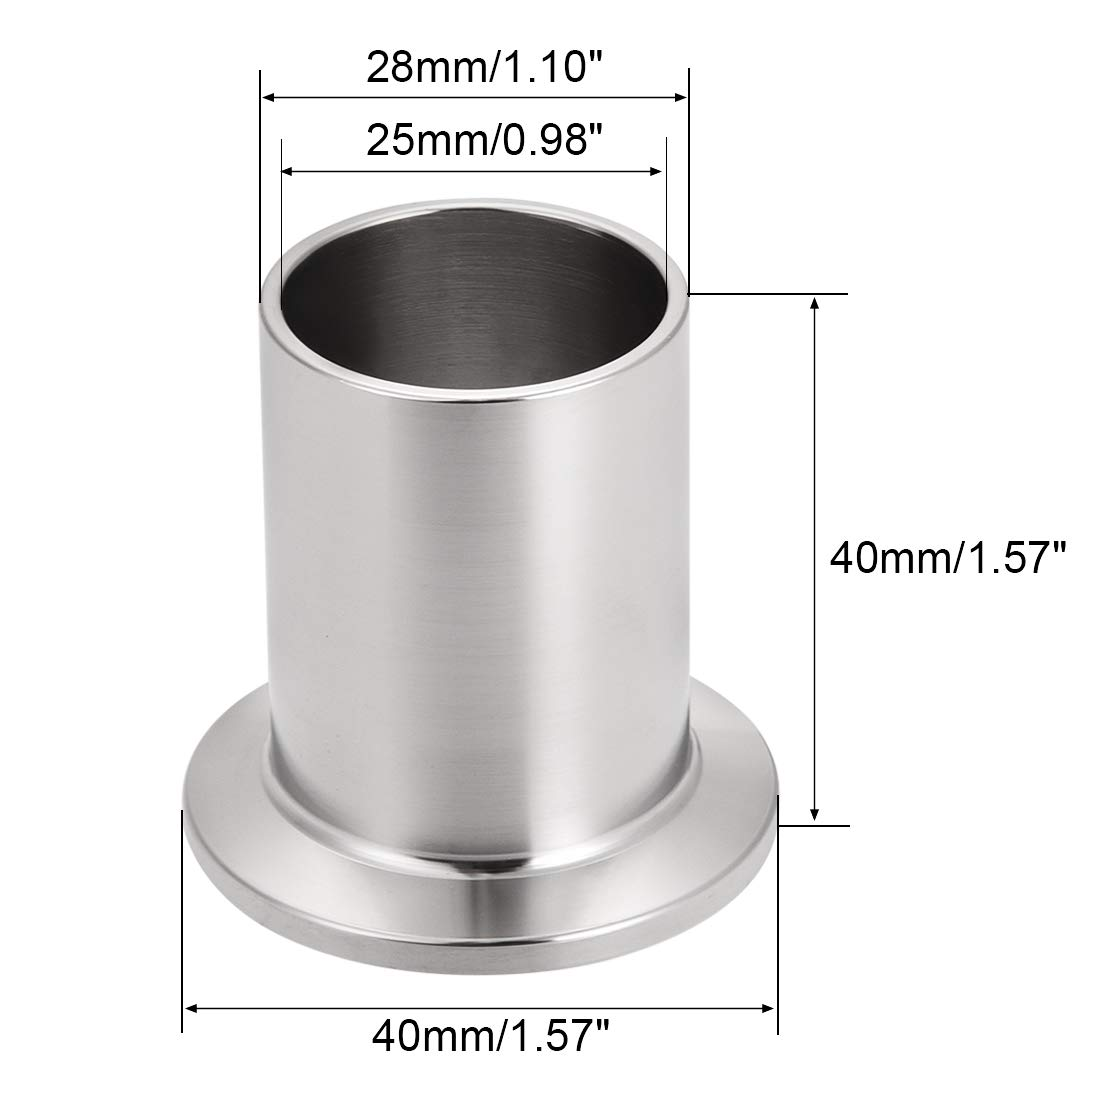 uxcell 304 Stainless Steel Fitting Long Weld Clamp Ferrule Fits Tri Clamp 54mm x 40mm 2Pcs